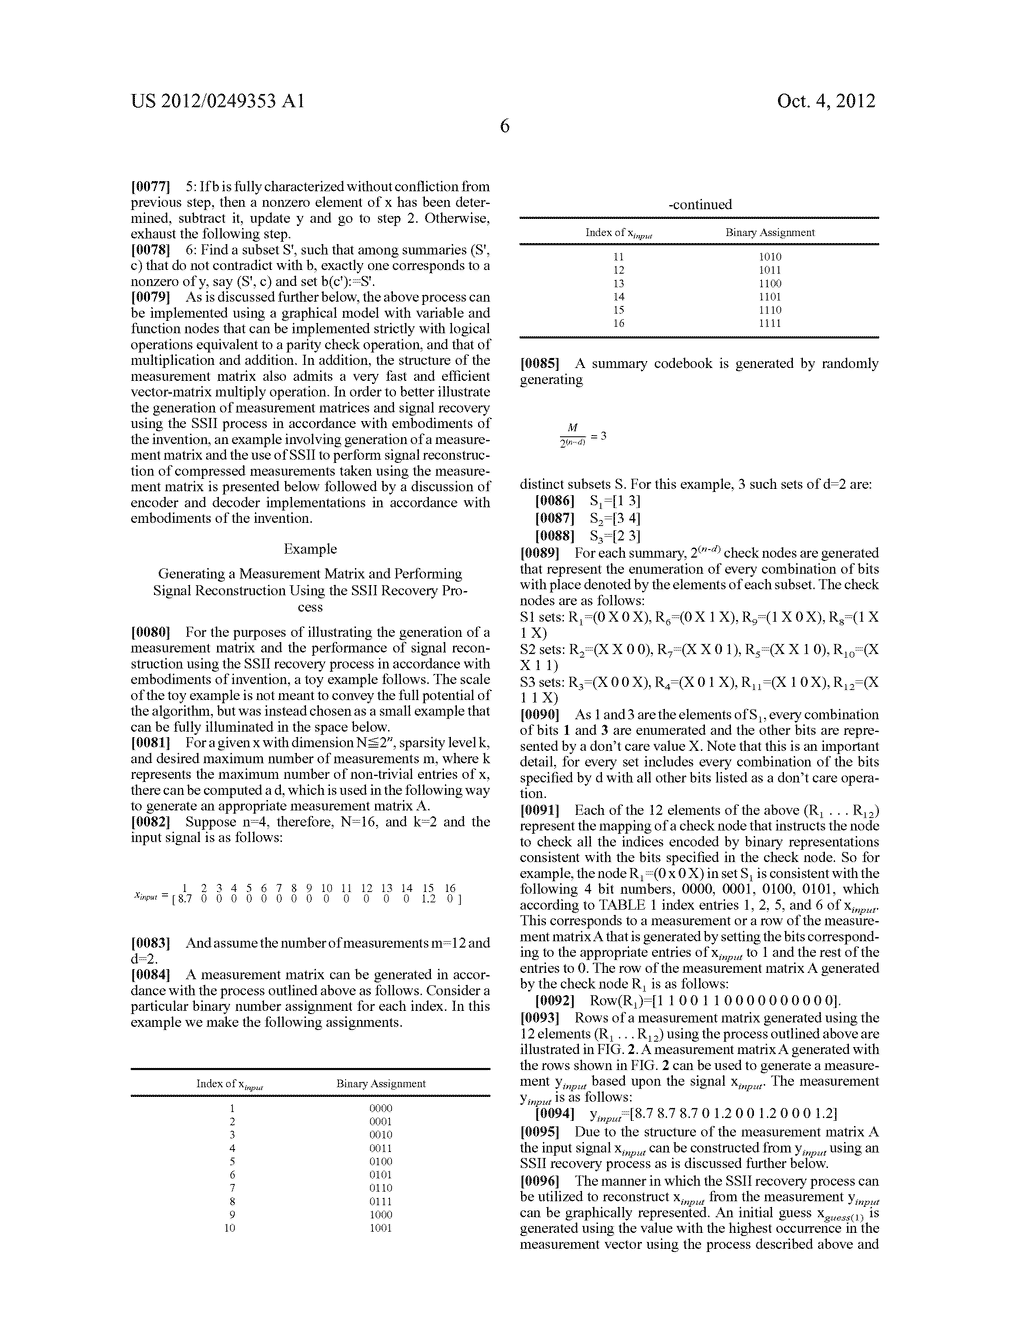 SYSTEMS AND METHODS FOR ACQUIRING AND DECODING SIGNALS USING COMPRESSED     SENSING - diagram, schematic, and image 14